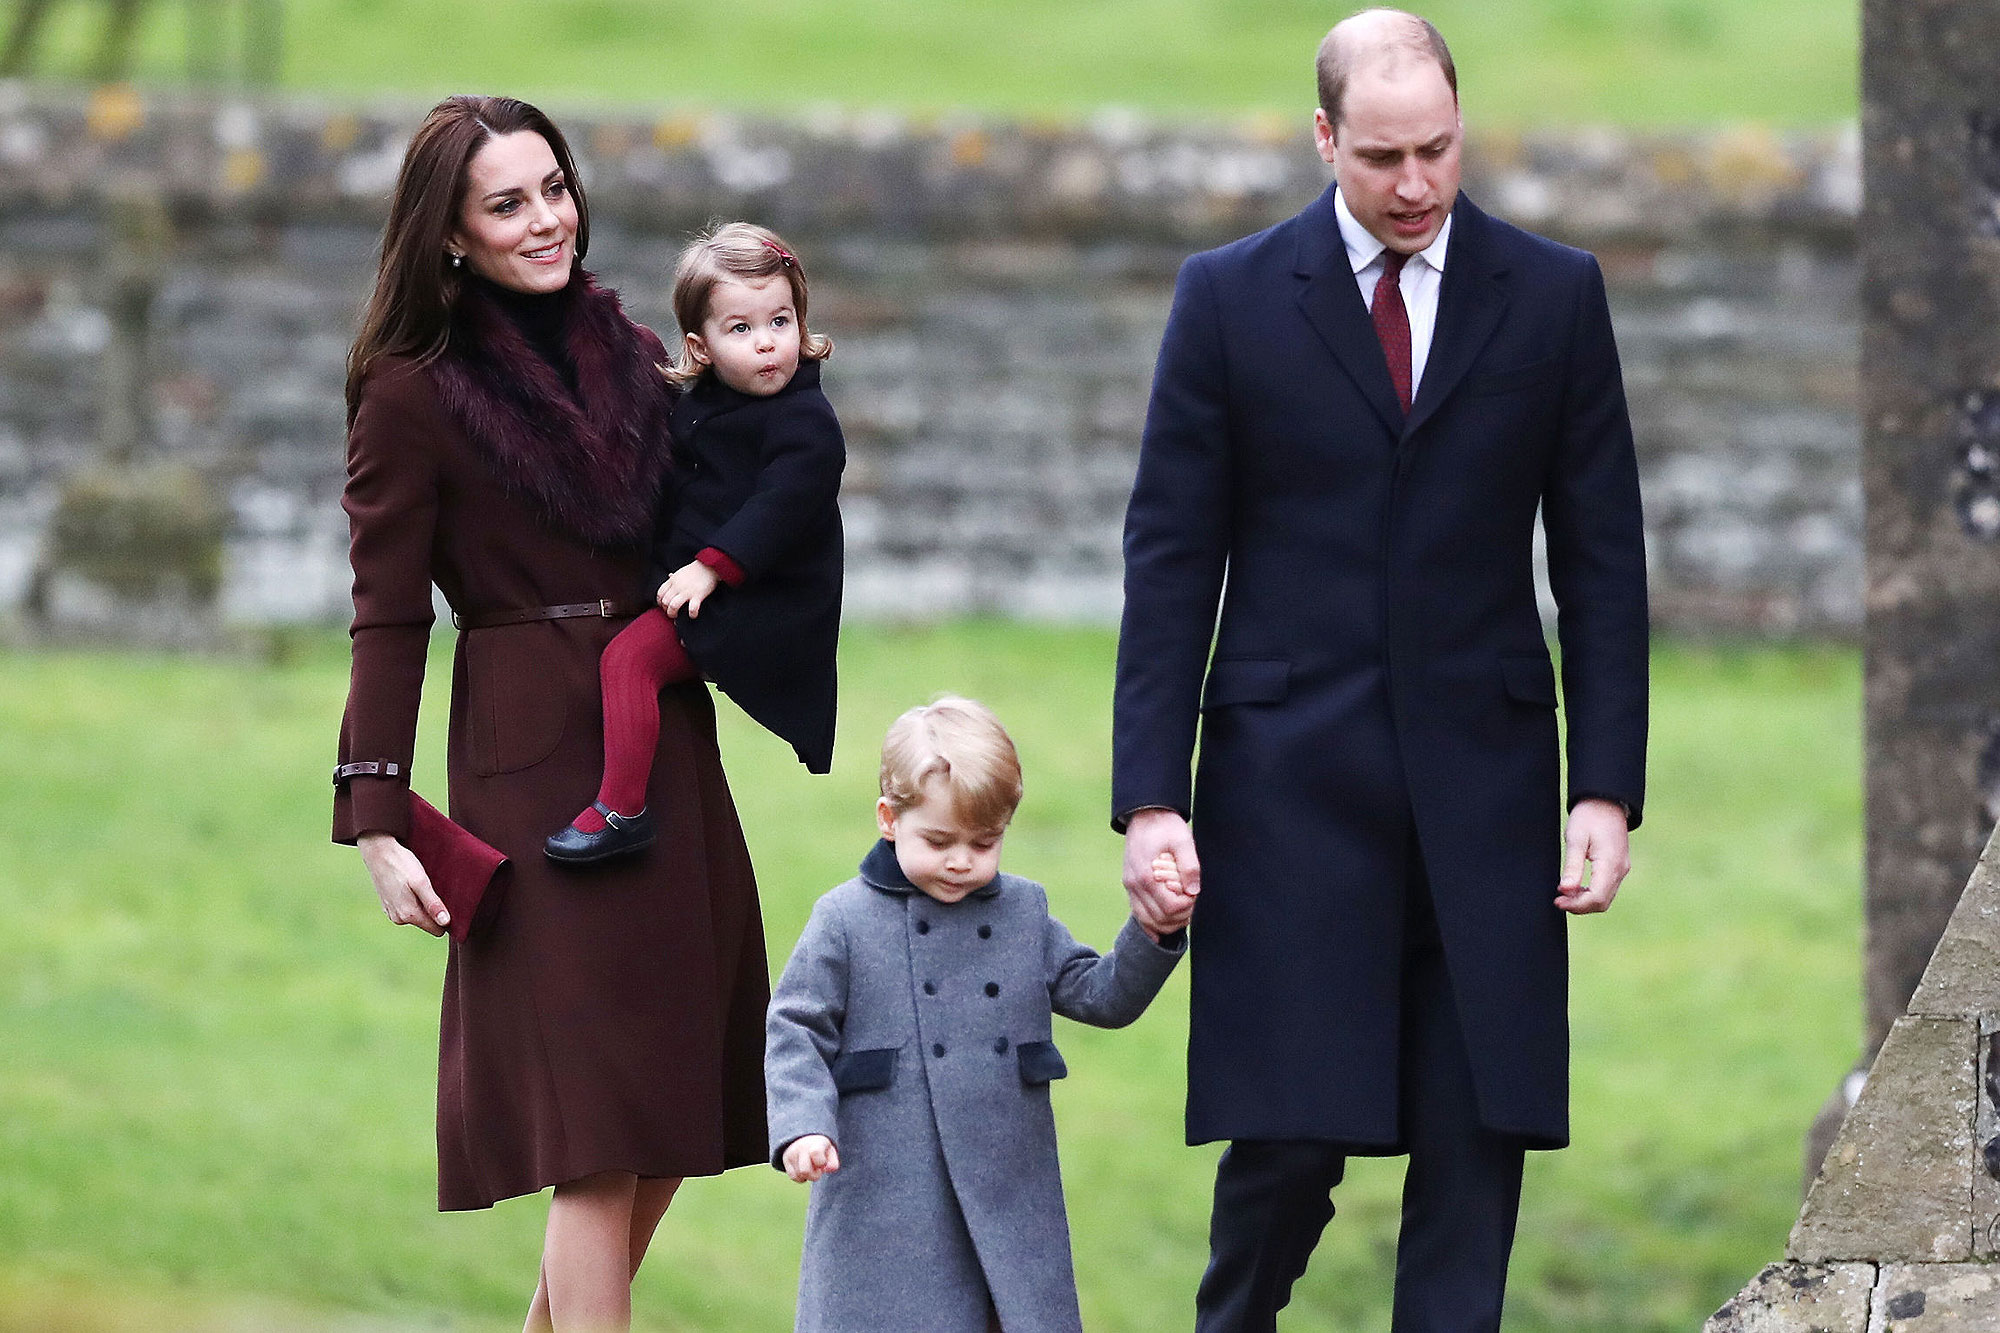 Royals attends Christmas Day Church service. The Duke and Duchess of Cambridge, Prince George and Princess Charlotte arrive to attend the morning Christmas Day service at St Mark's Church in Englefield, Berkshire. Picture date: Sunday December 25, 2016. See PA story ROYAL Christmas. Photo credit should read: Andrew Matthews/PA Wire URN:29550540